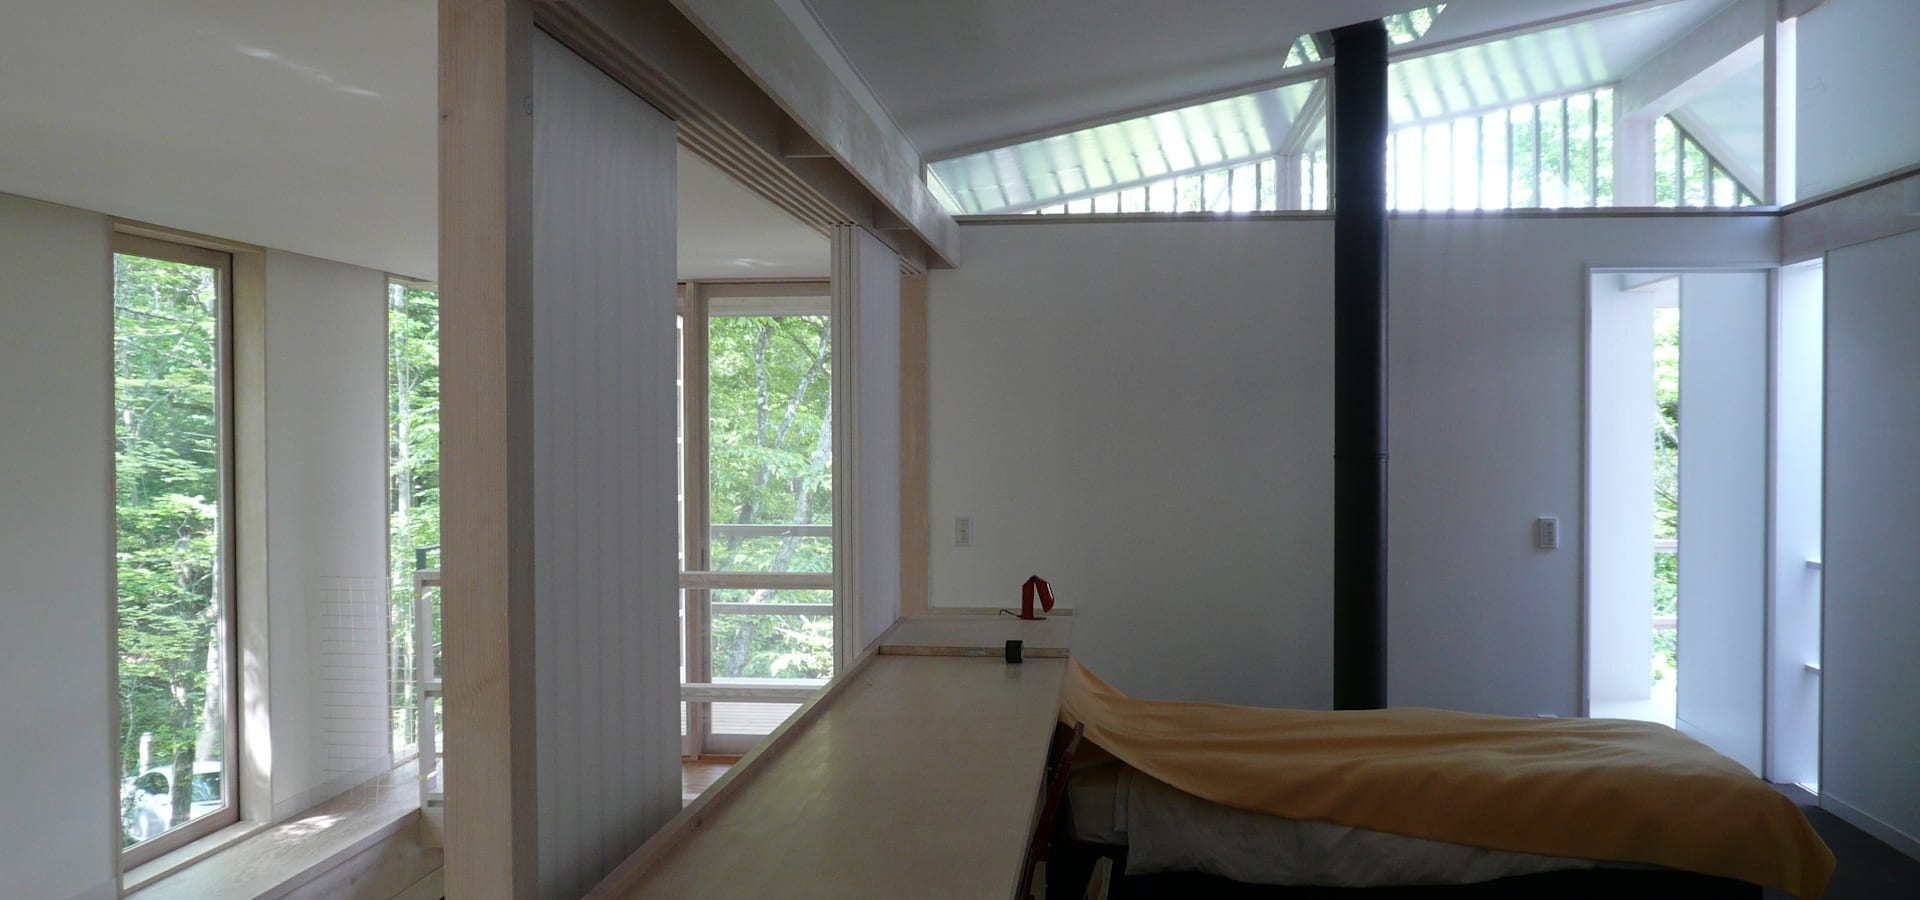 Naoko Hirakura Architect & Associates